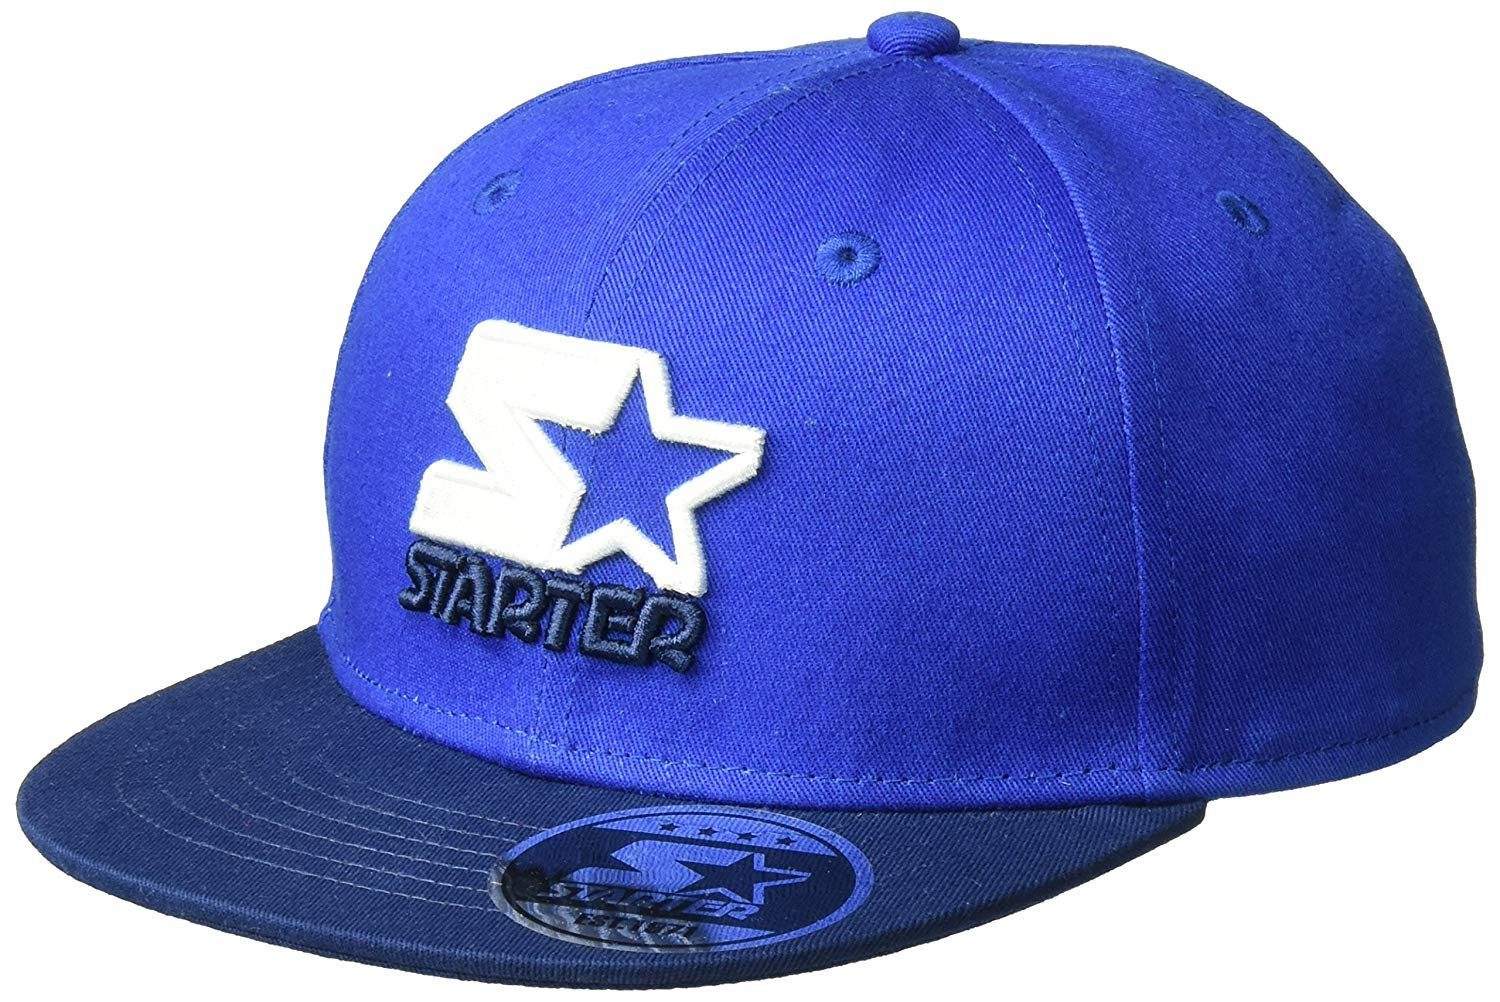 37258eff9 Cheap Starter Snapback, find Starter Snapback deals on line at ...